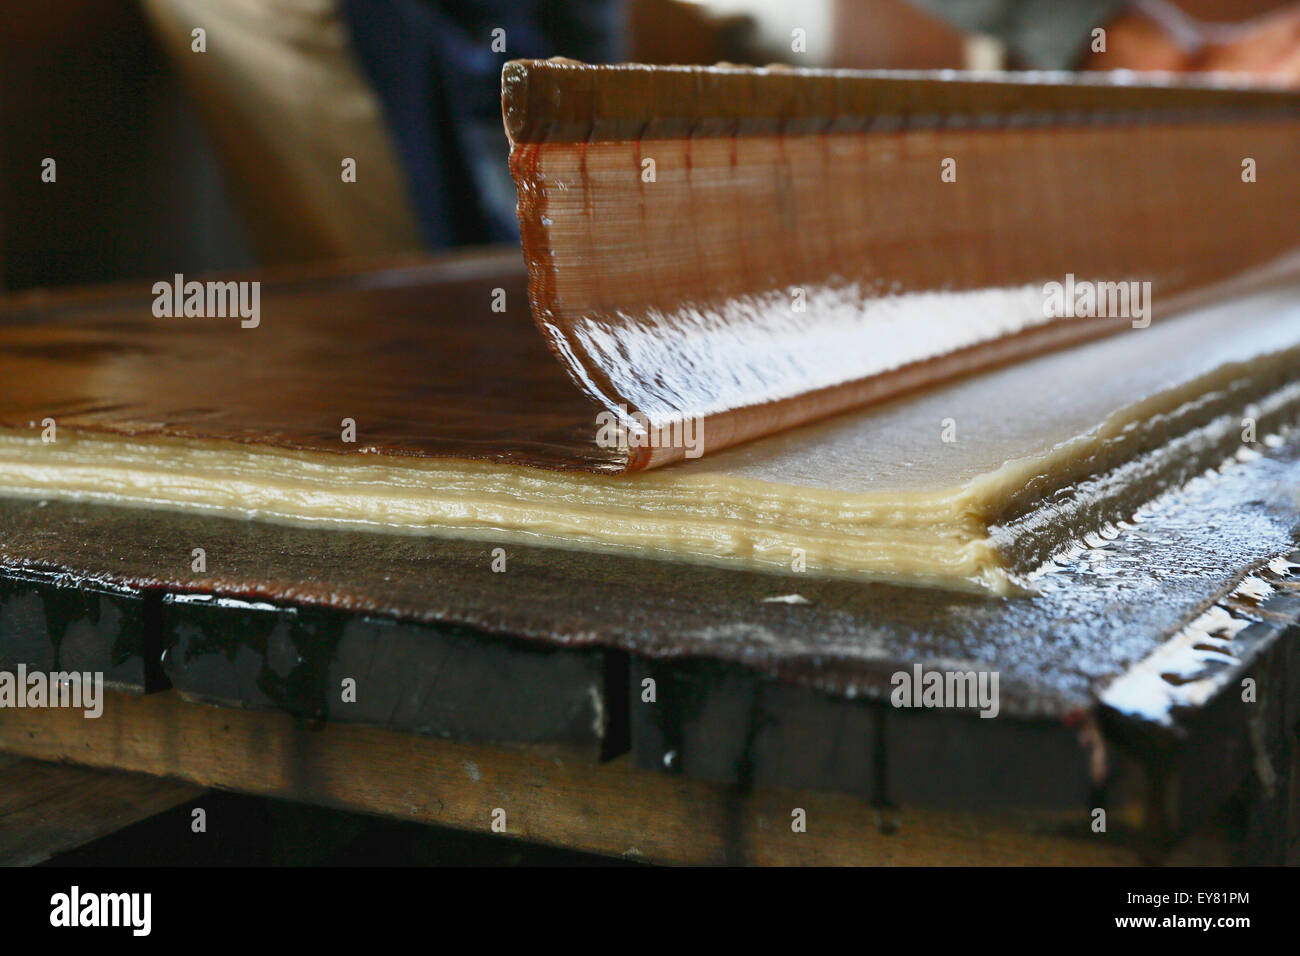 Japanese traditional paper crafting studio Stock Photo